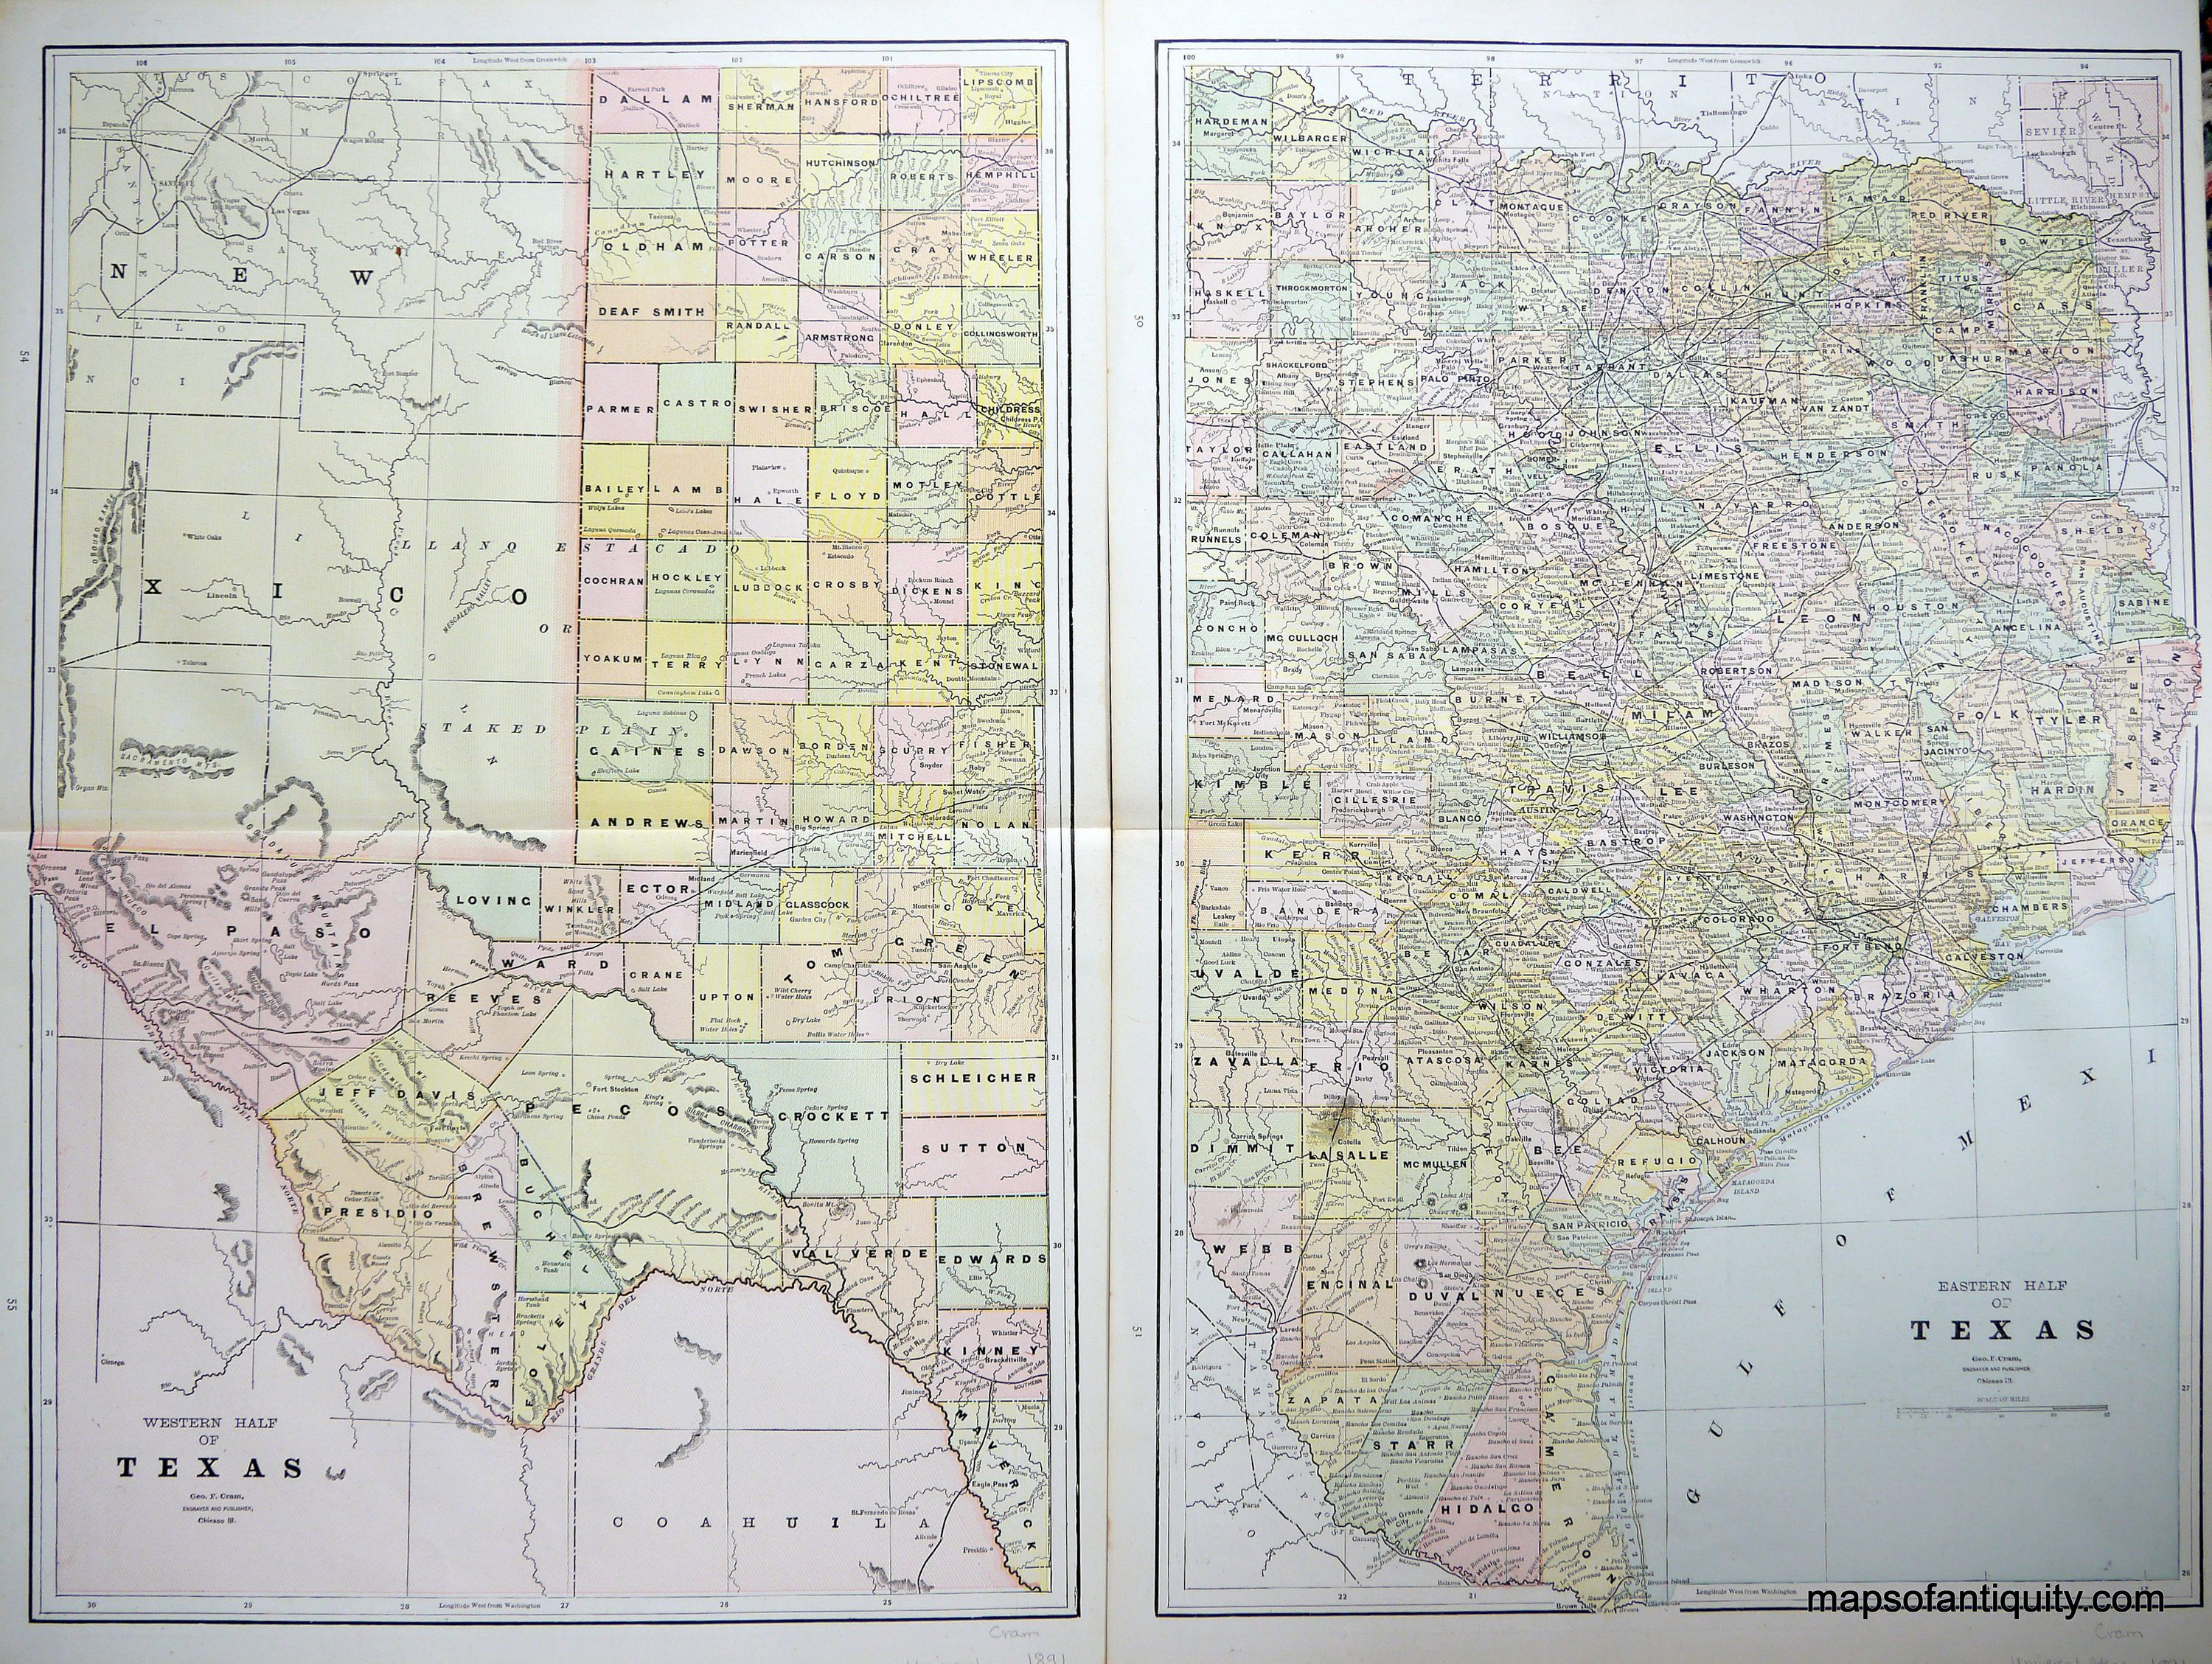 1890 Map to Illustrate the Colonies and